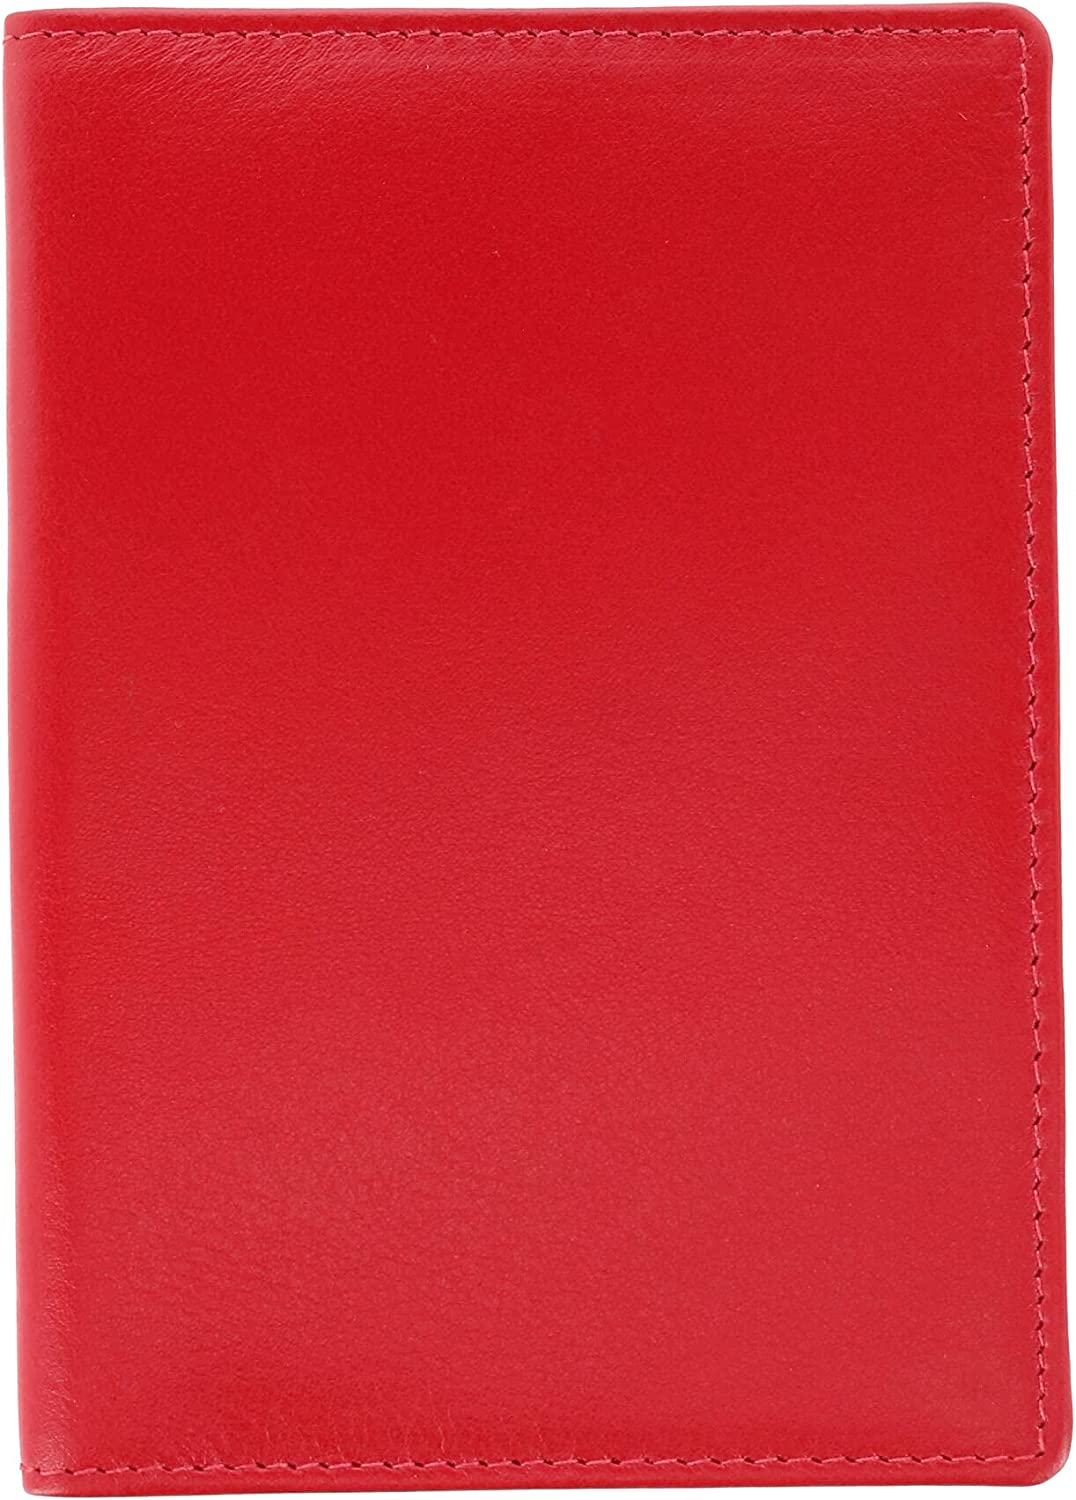 ILI Leather Solid Color Vaccine Card and ID Holder